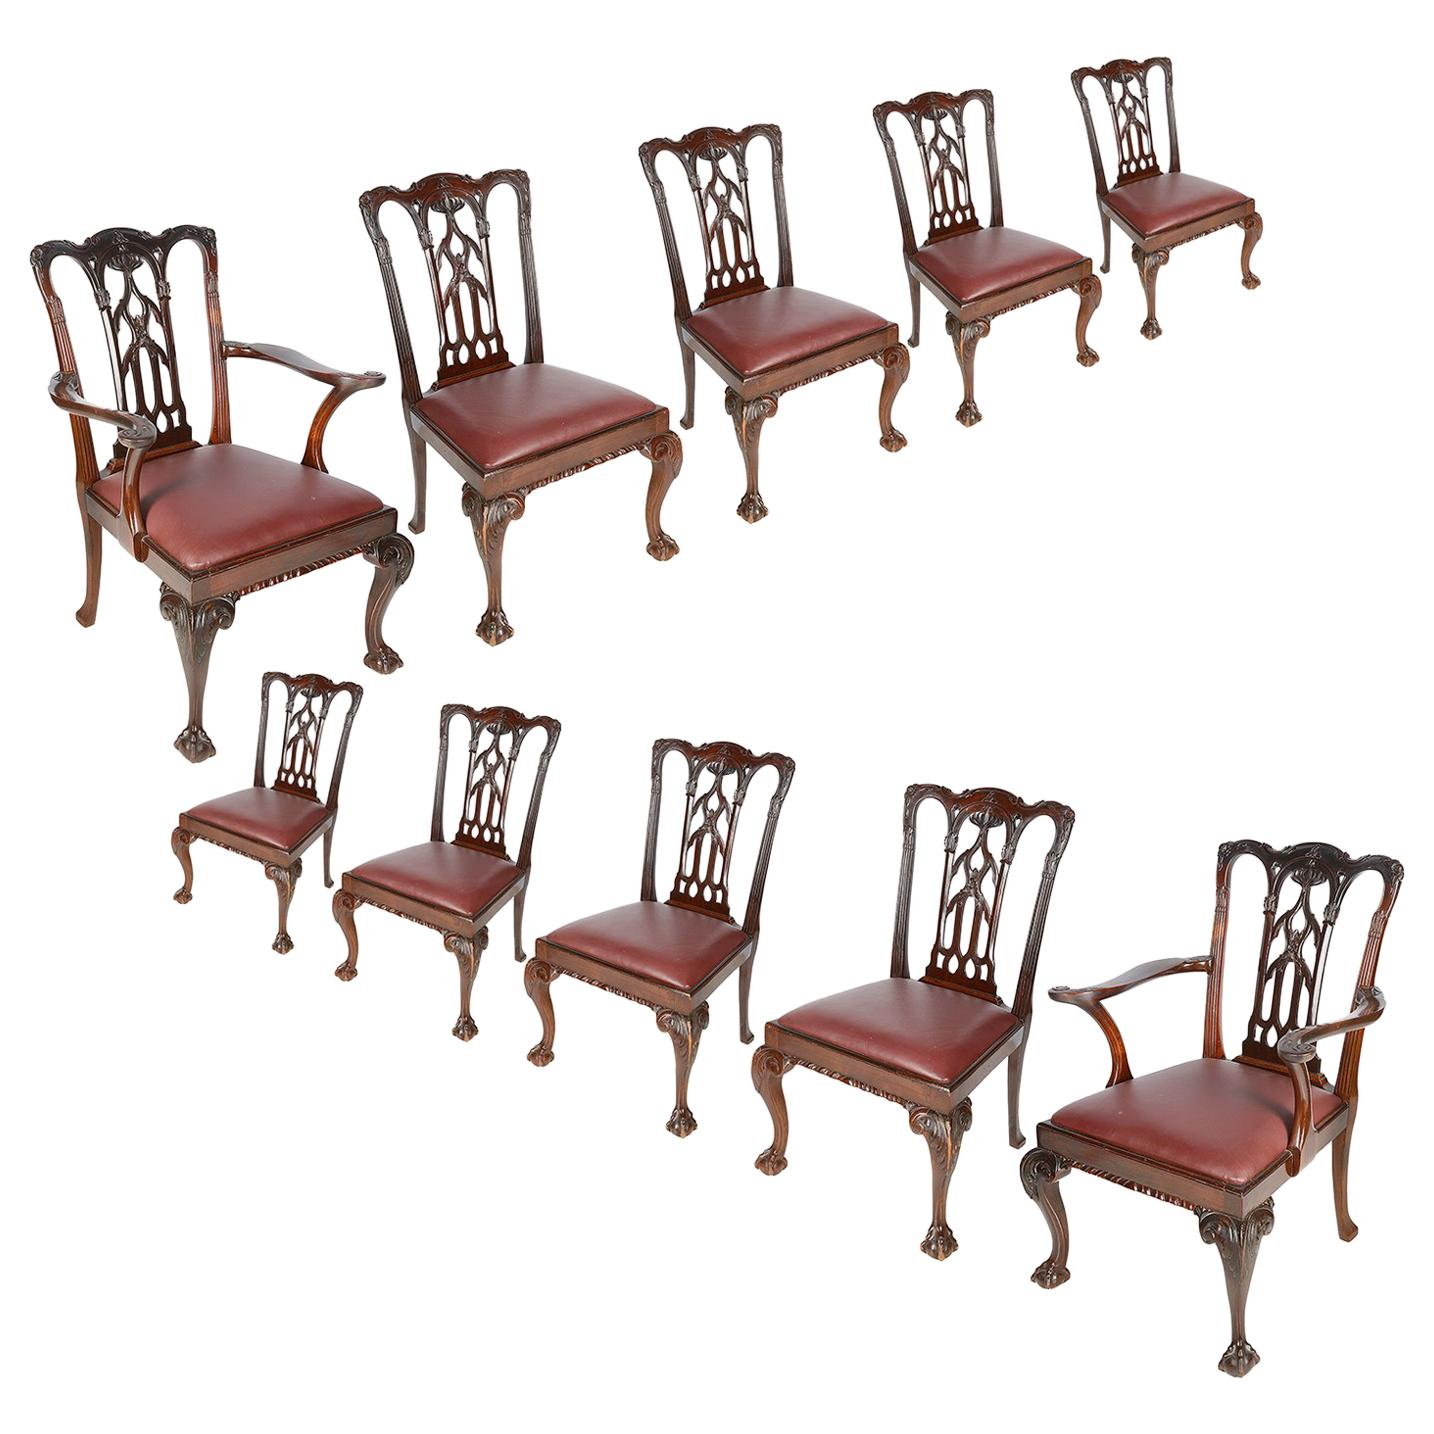 10 Chippendale Revival Mahogany Dining Chairs, circa 1900